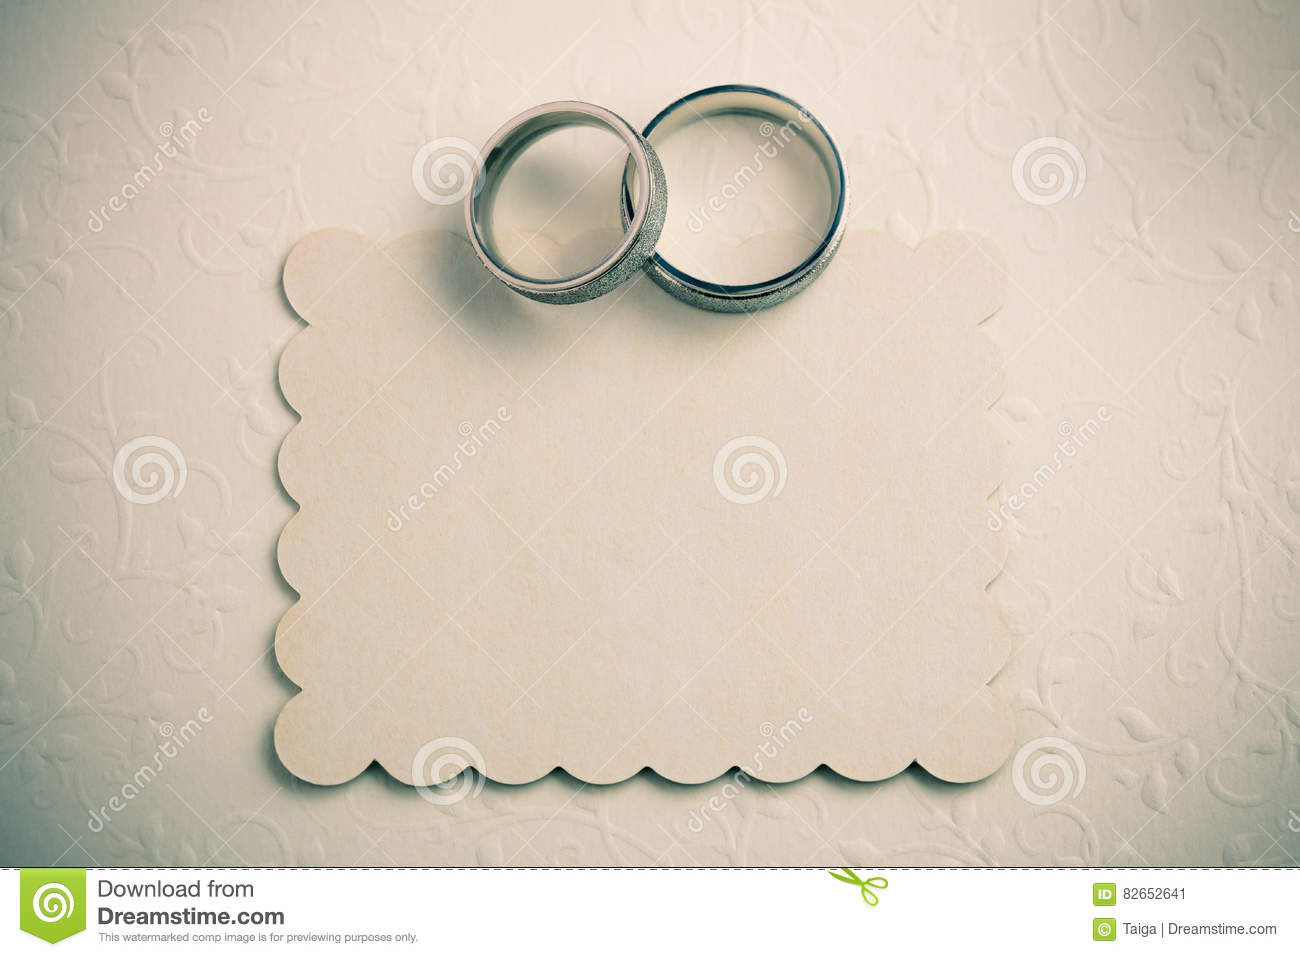 vintage wedding background invite card design stock image image of jewelery jewelry 82652641 dreamstime com